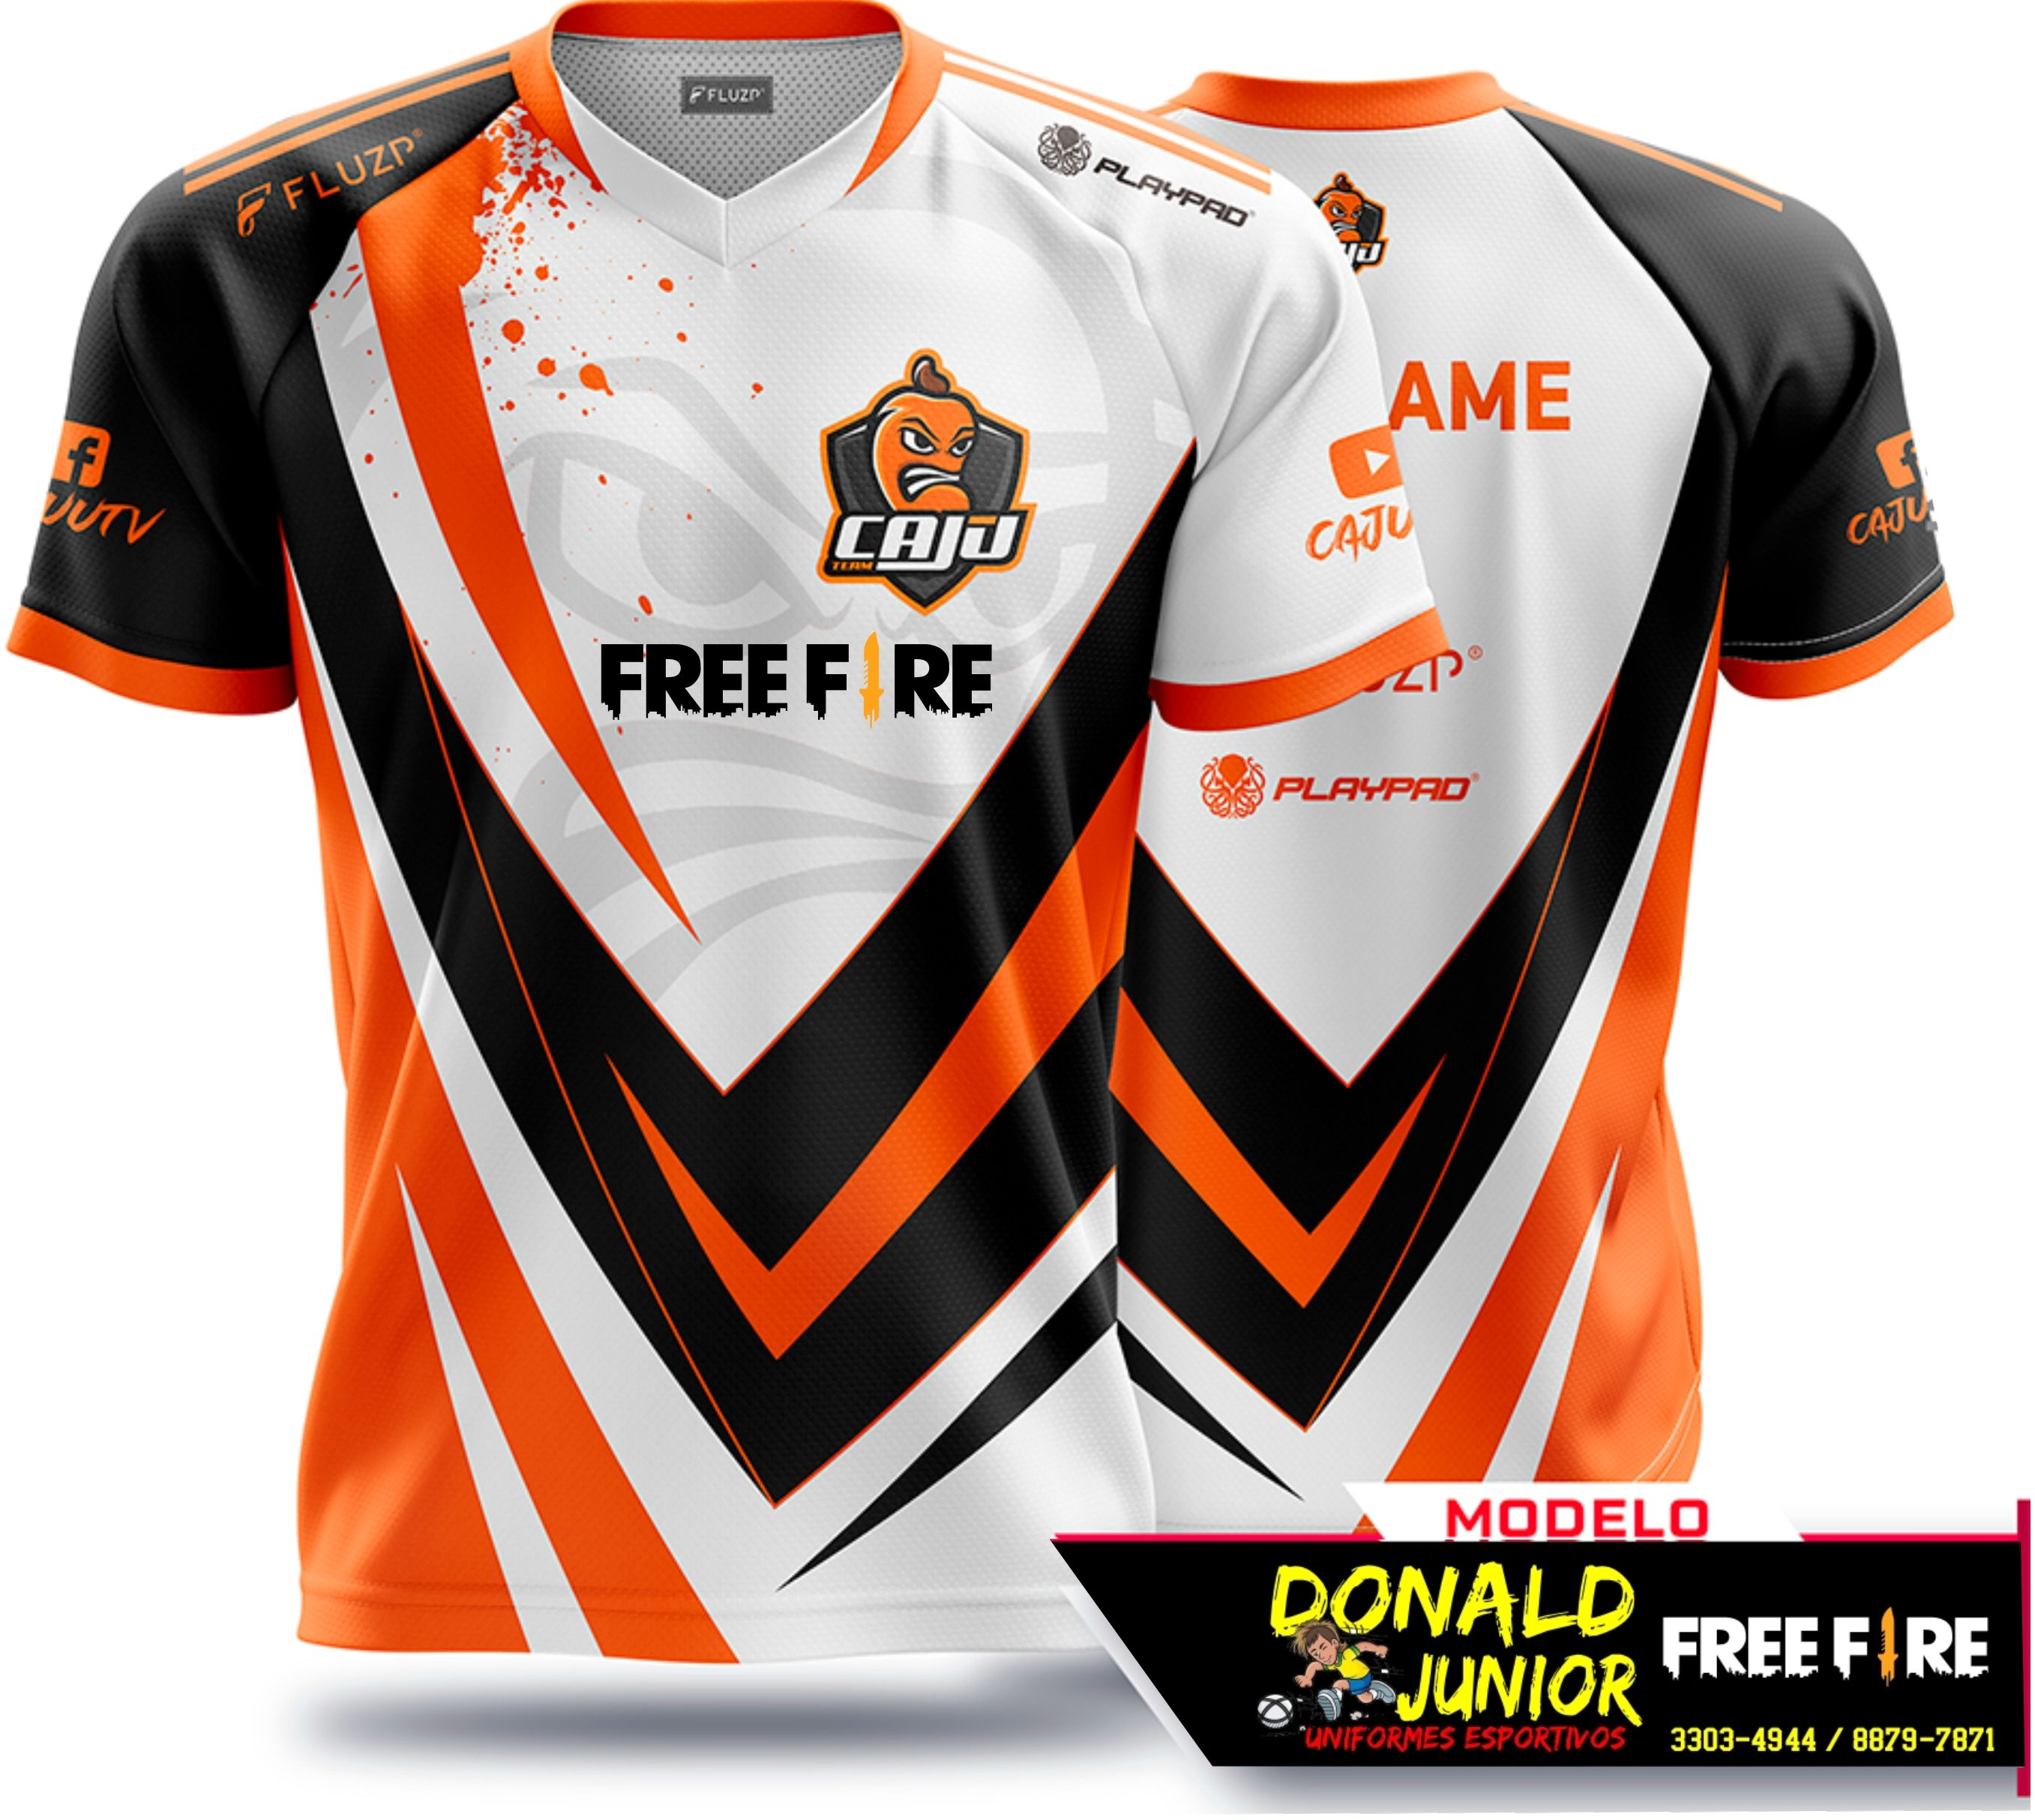 Download 900 Jerseys Ideas In 2021 Jersey Design Cycling Outfit Cycling Jersey Design